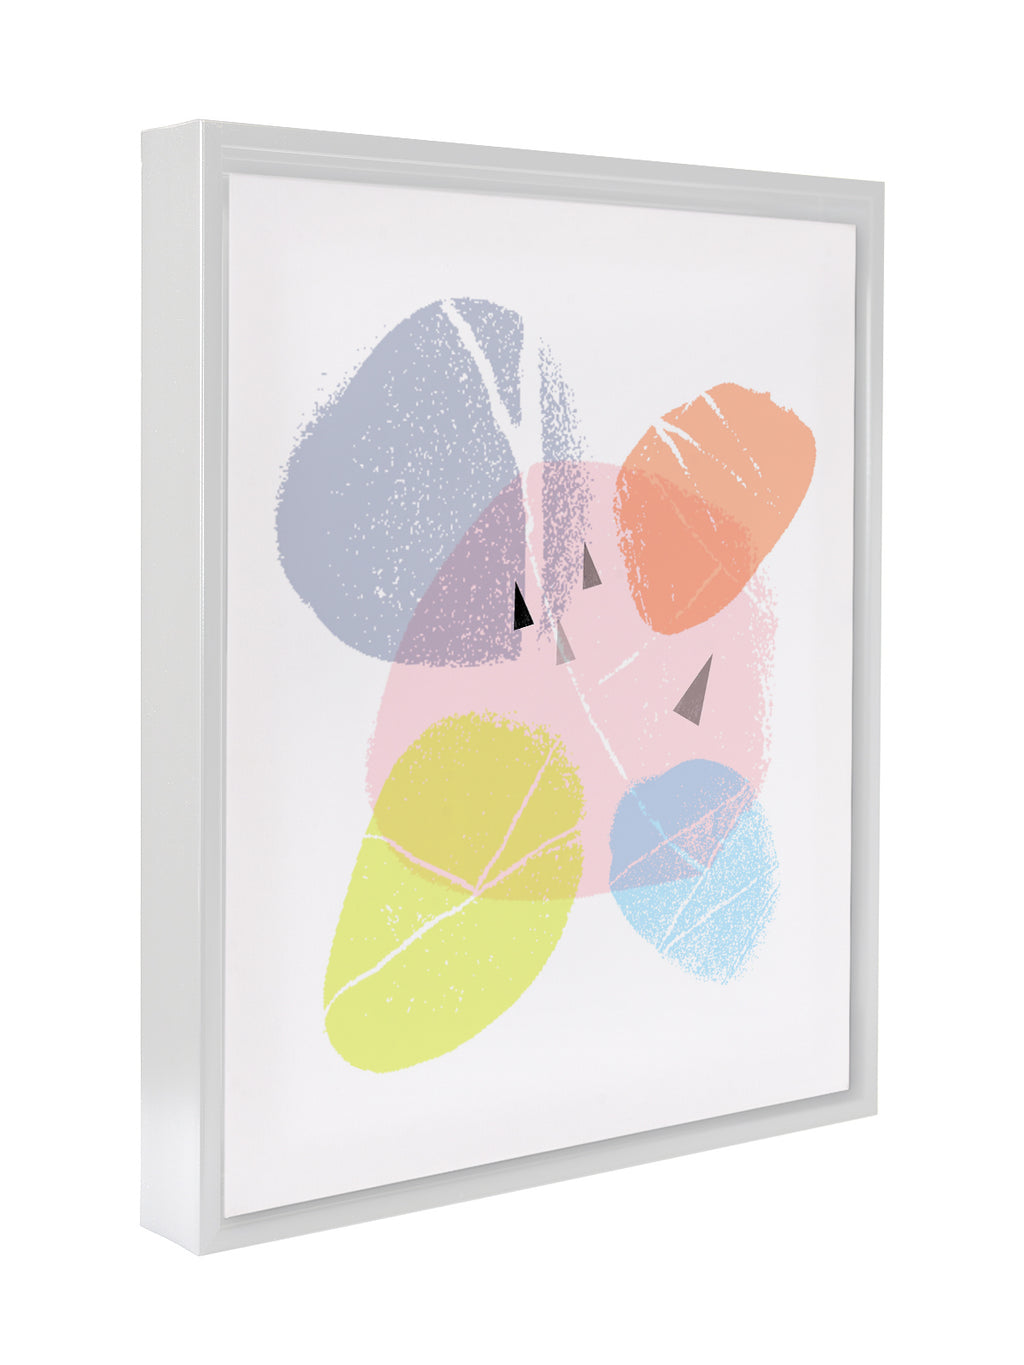 ABSTRACT FOUR Framed Canvas By Honeytree Prints